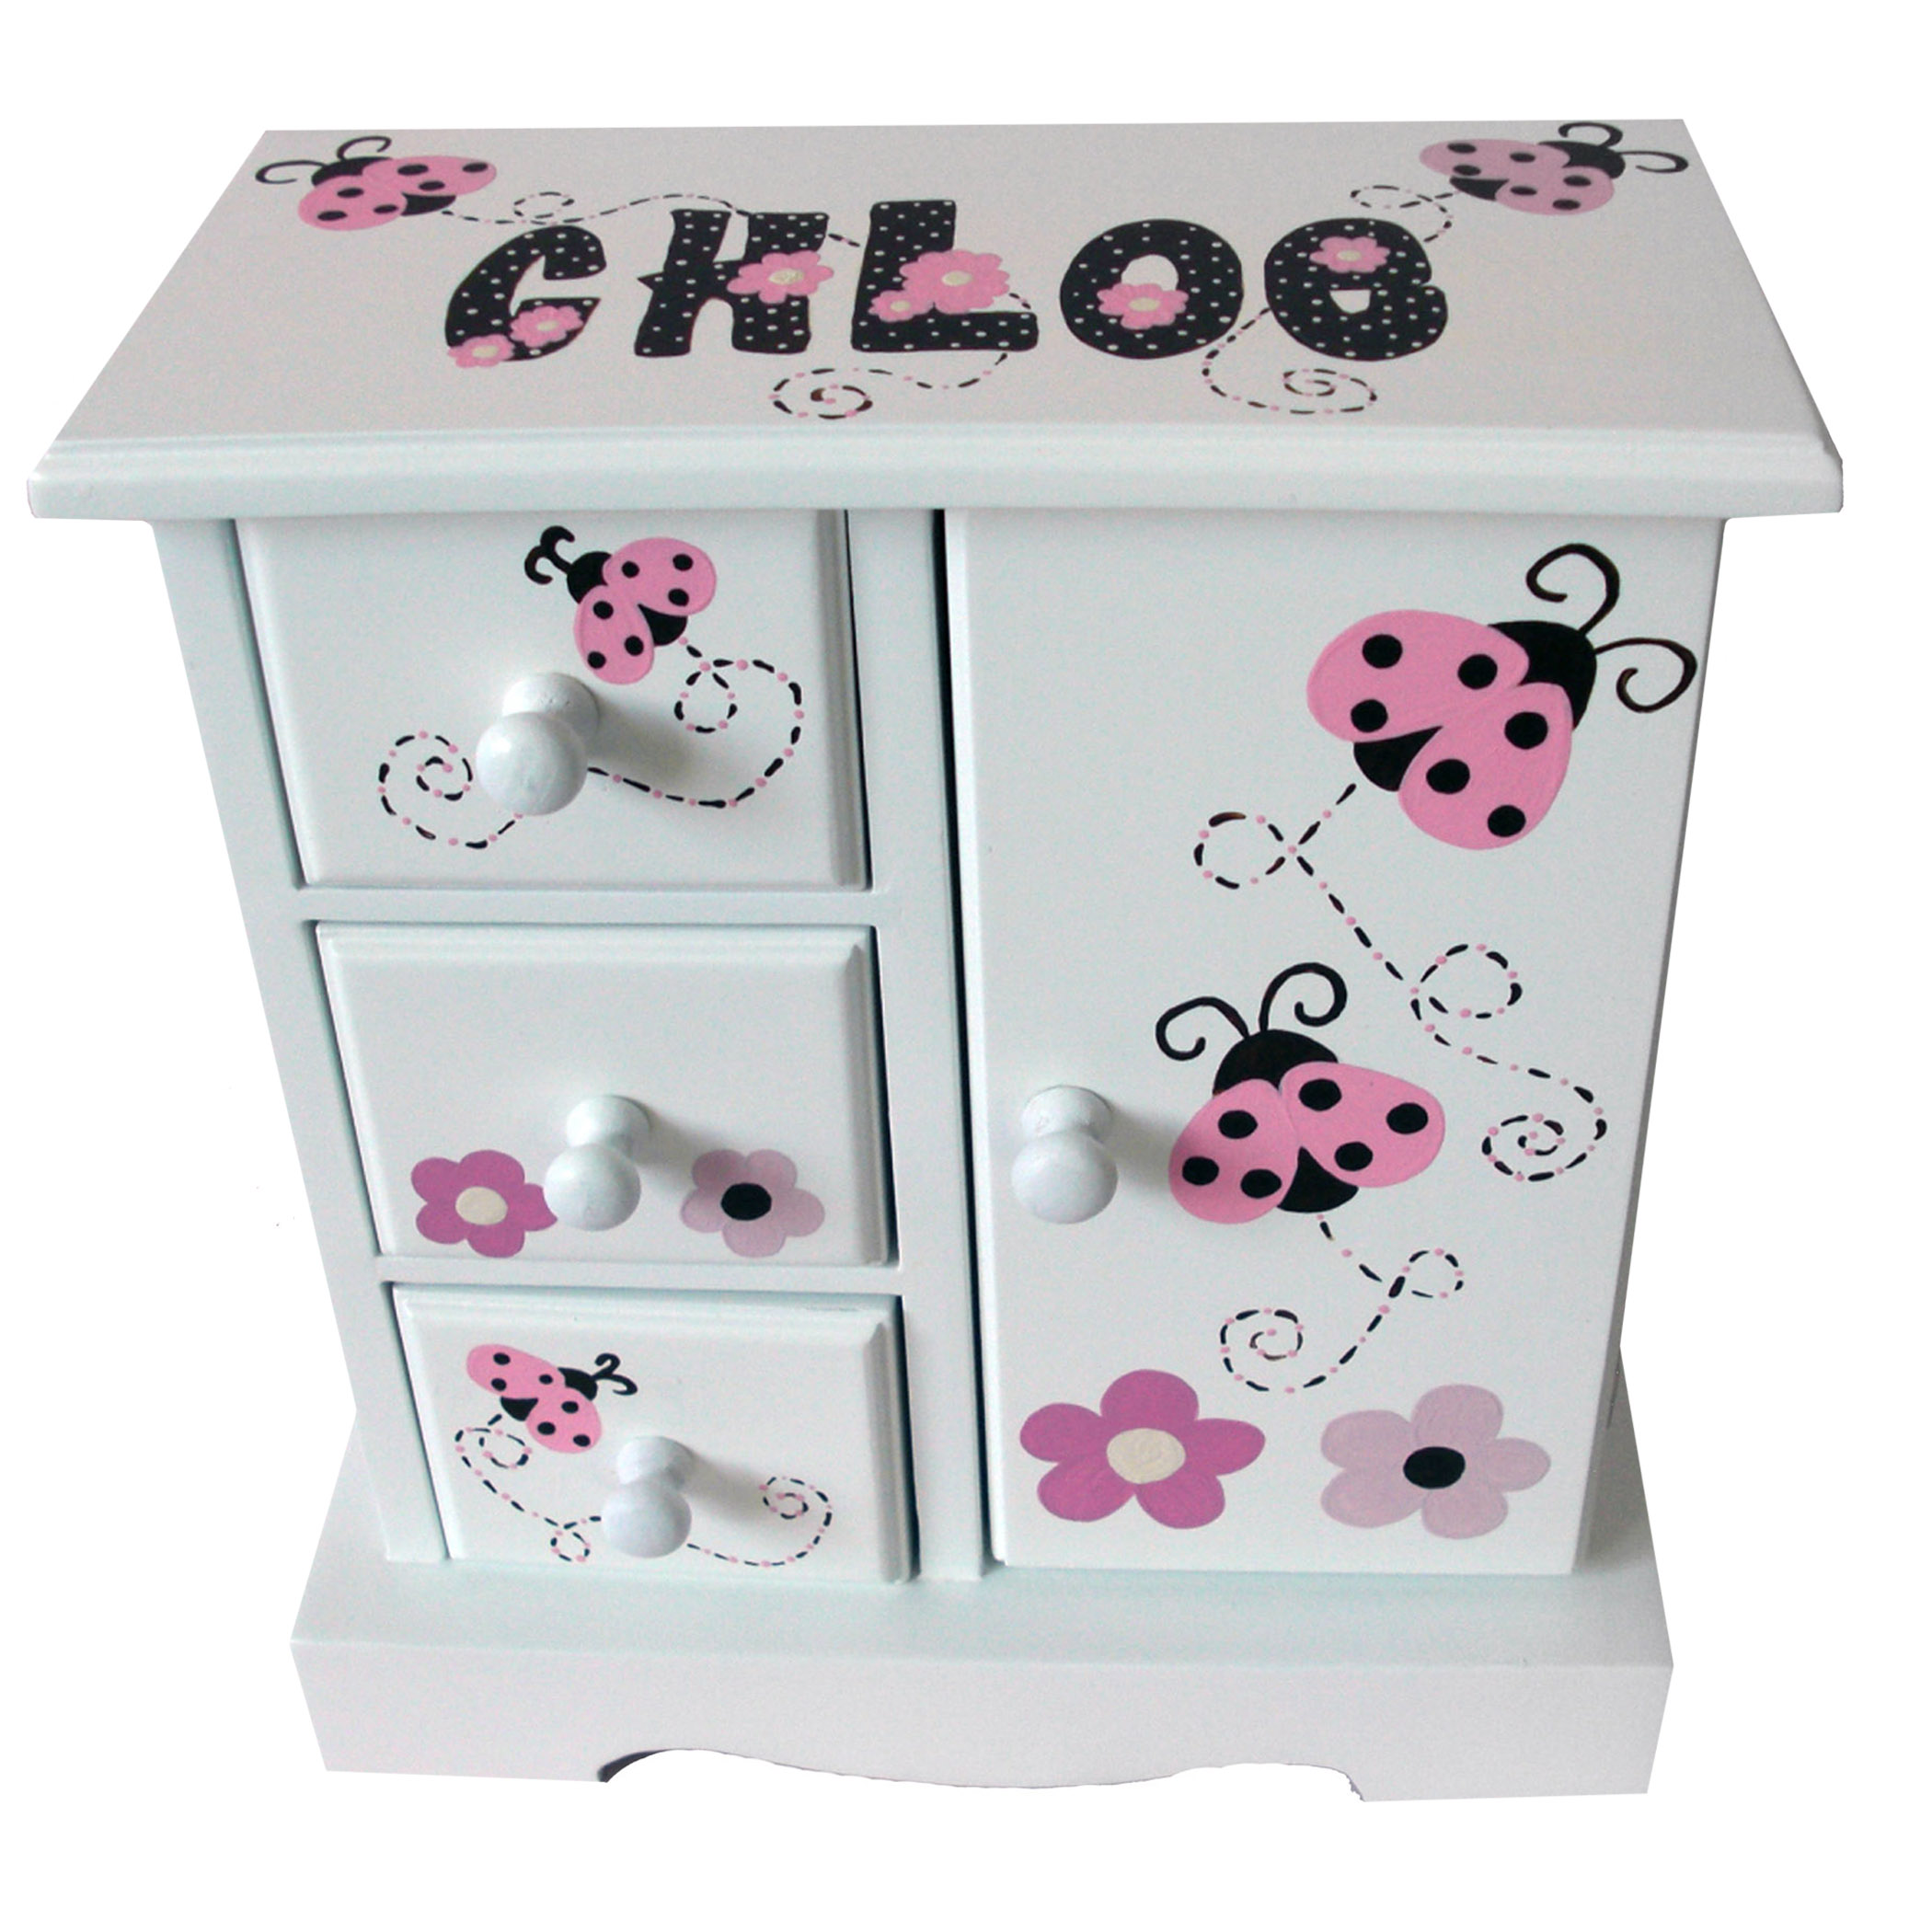 Adorable Jewelry Boxes for girls video on YouTube ...